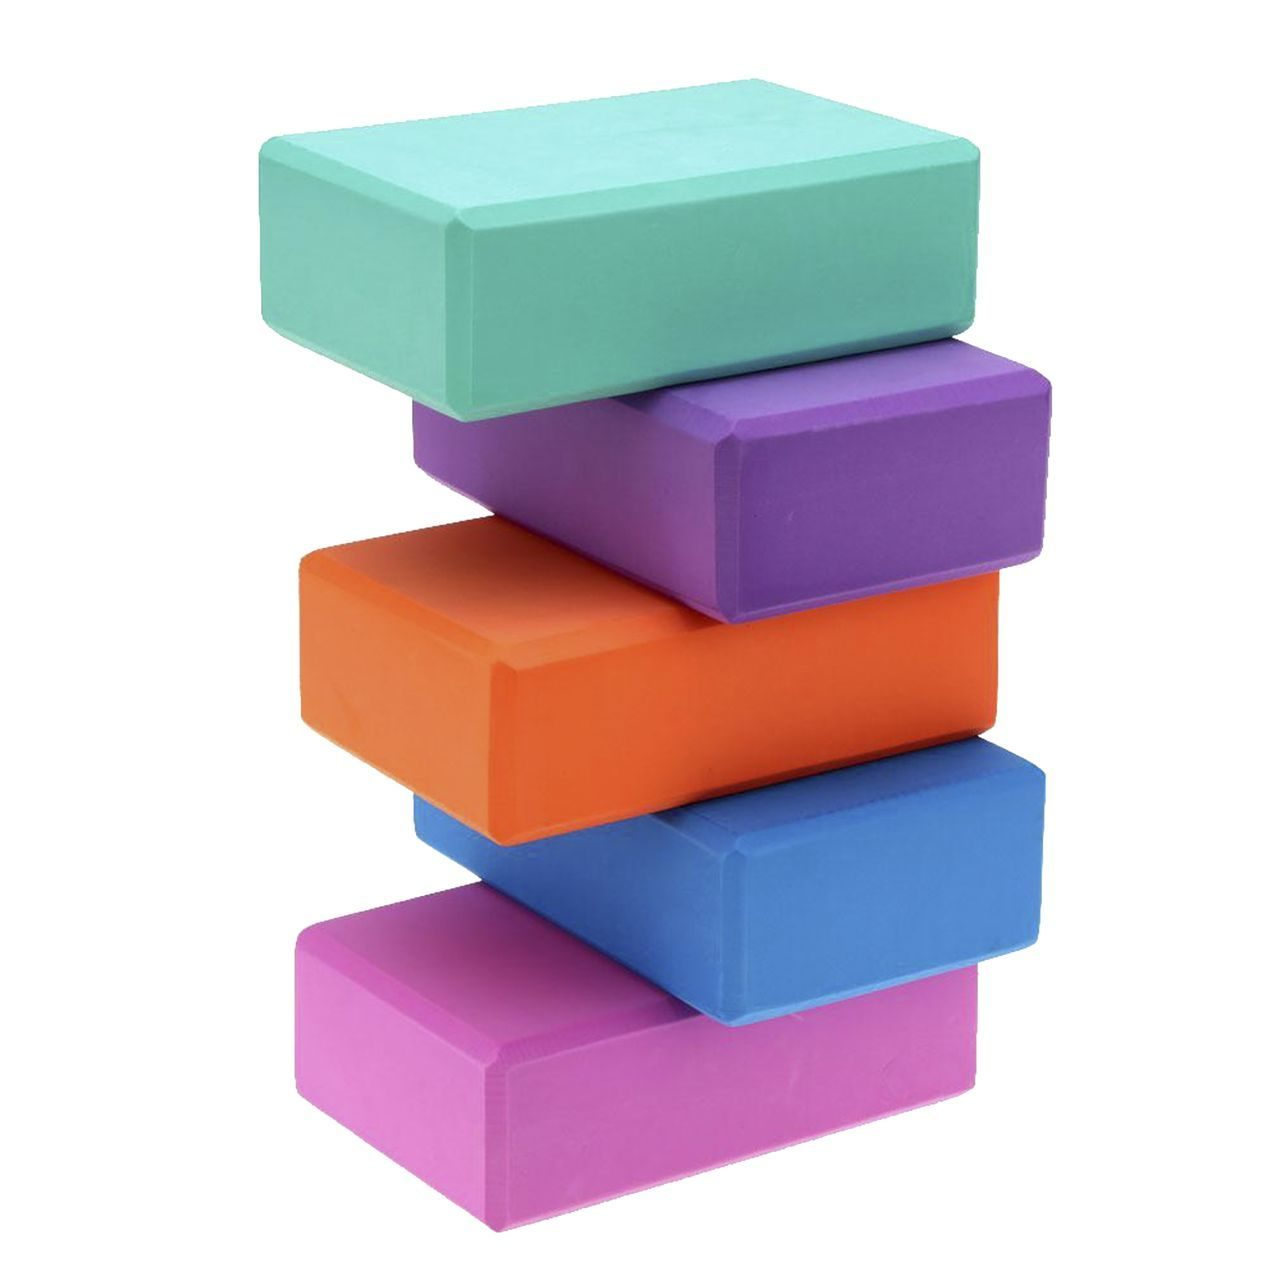 Yoga block multi